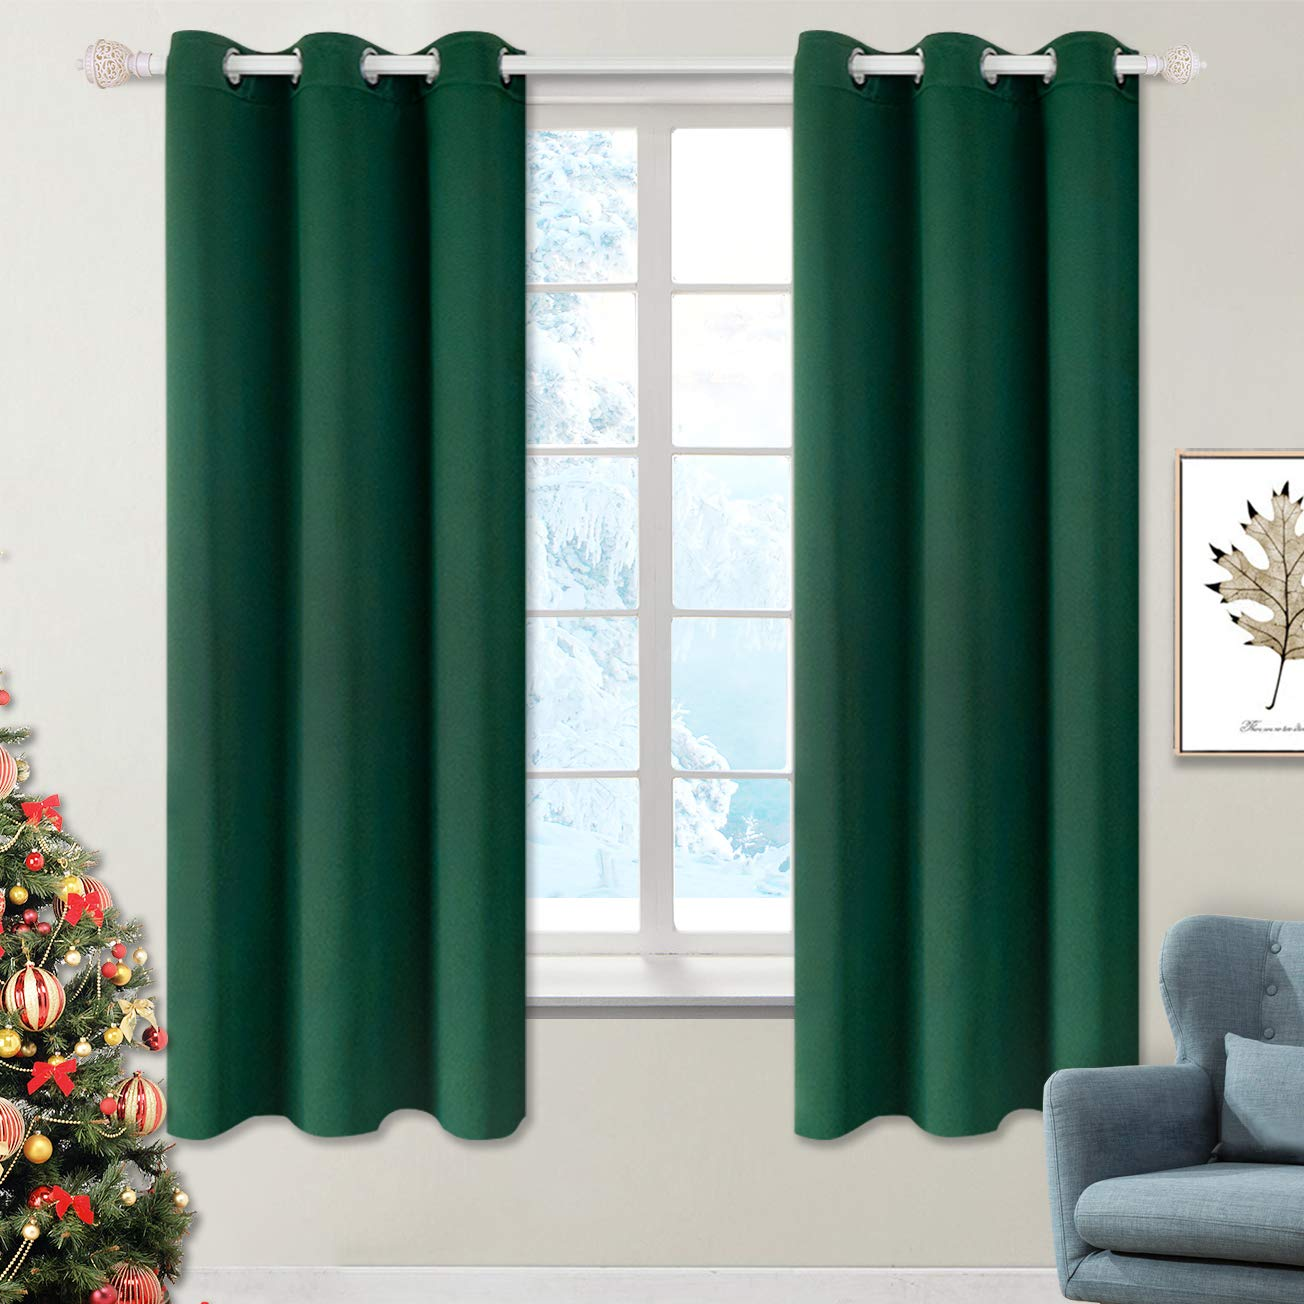 Set of 2 Decorative Curtain Panels (42 x 63 Inch, Jungle Green